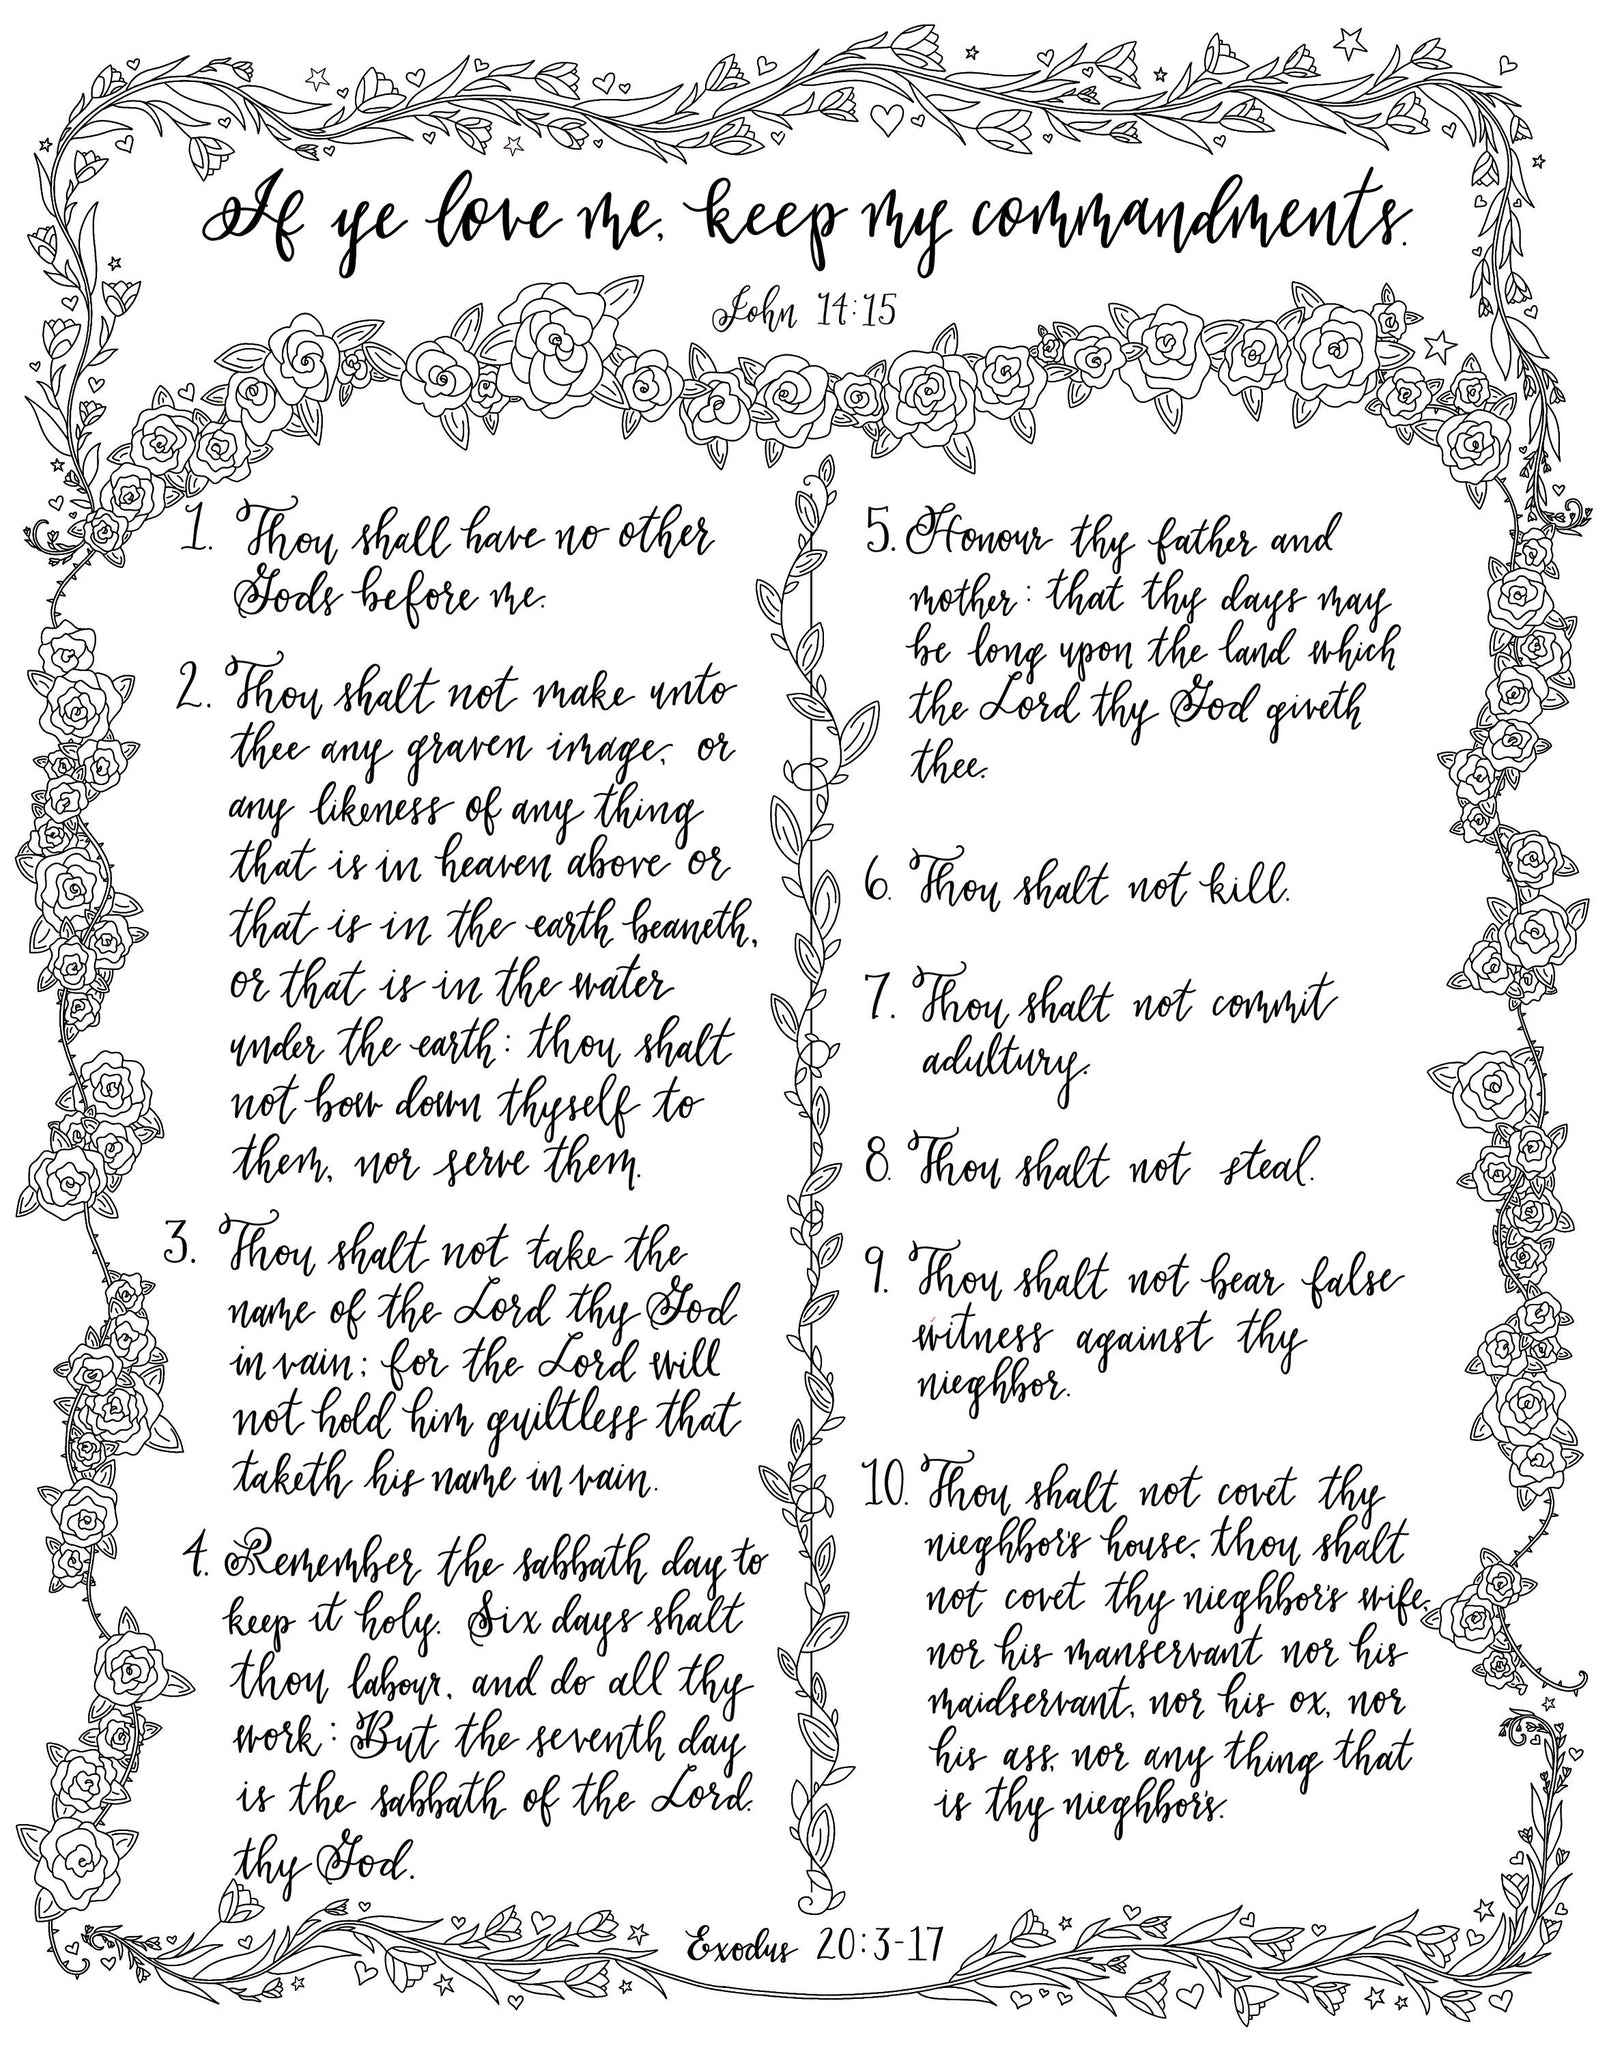 picture about The Ten Commandments Printable called Printable Coloring Web pages- The 10 Commandments